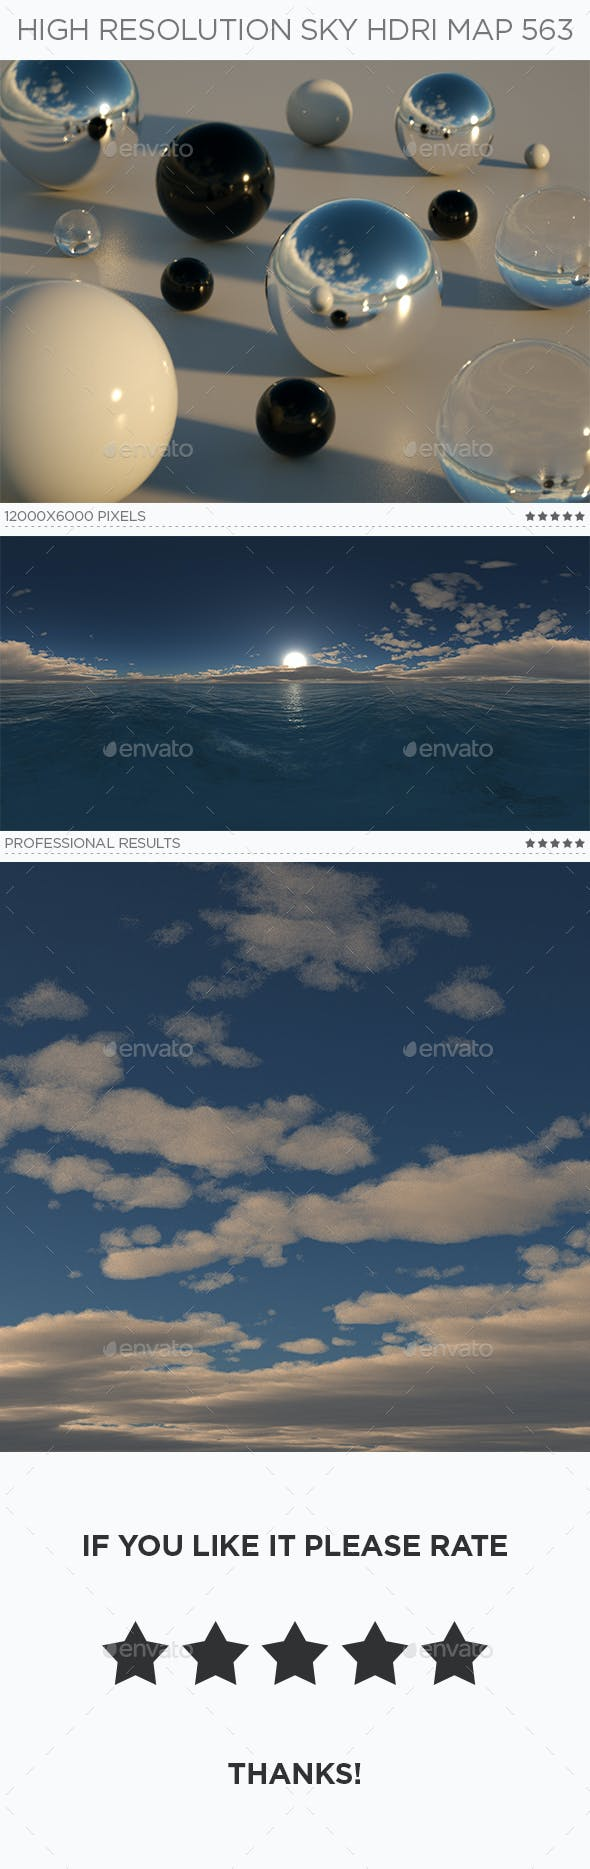 High Resolution Sky HDRi Map 563 - 3DOcean Item for Sale